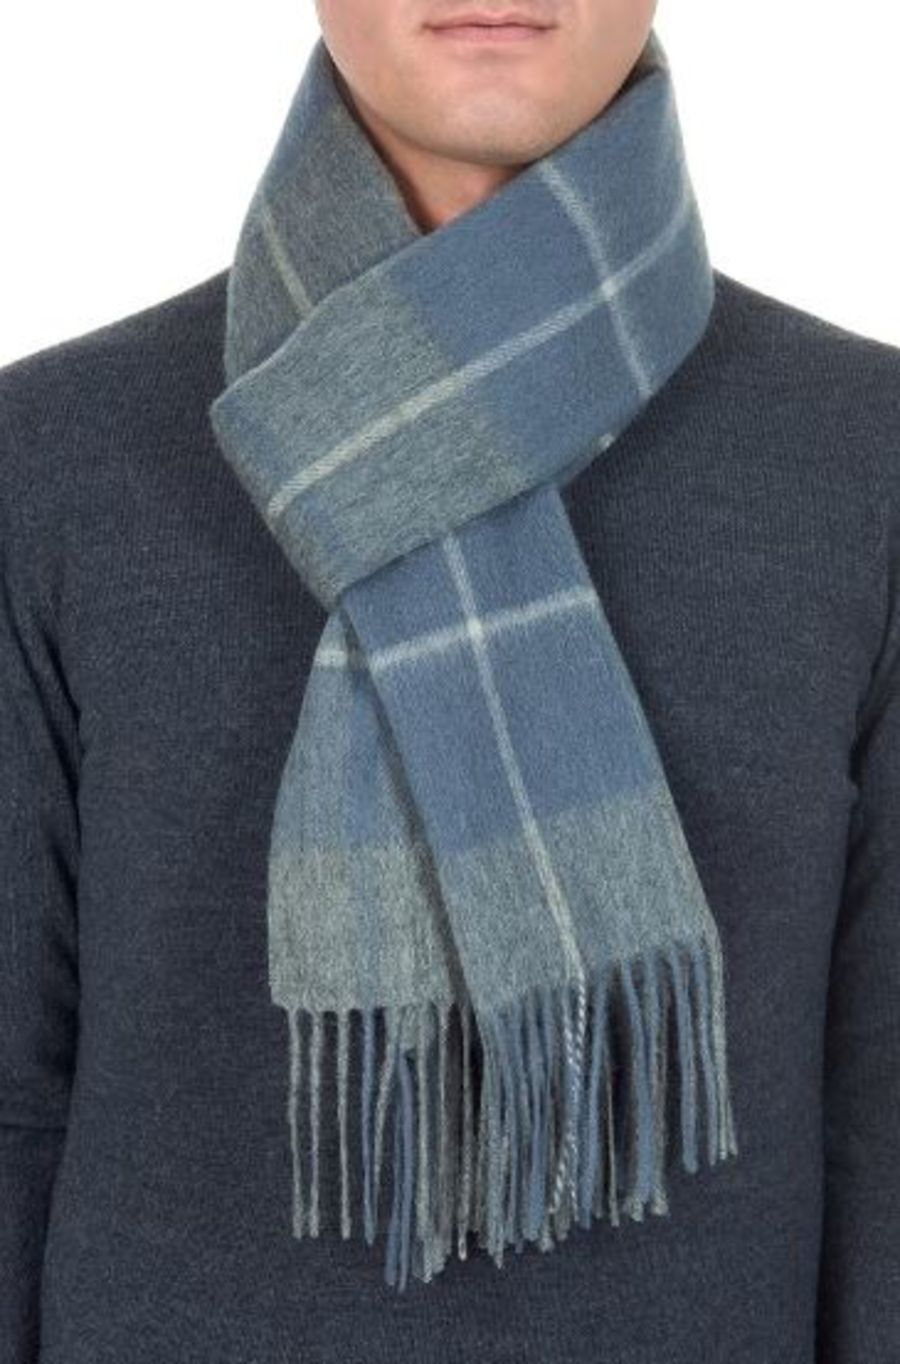 Classic Gents Style 100% Wool Scarf - PBY22W